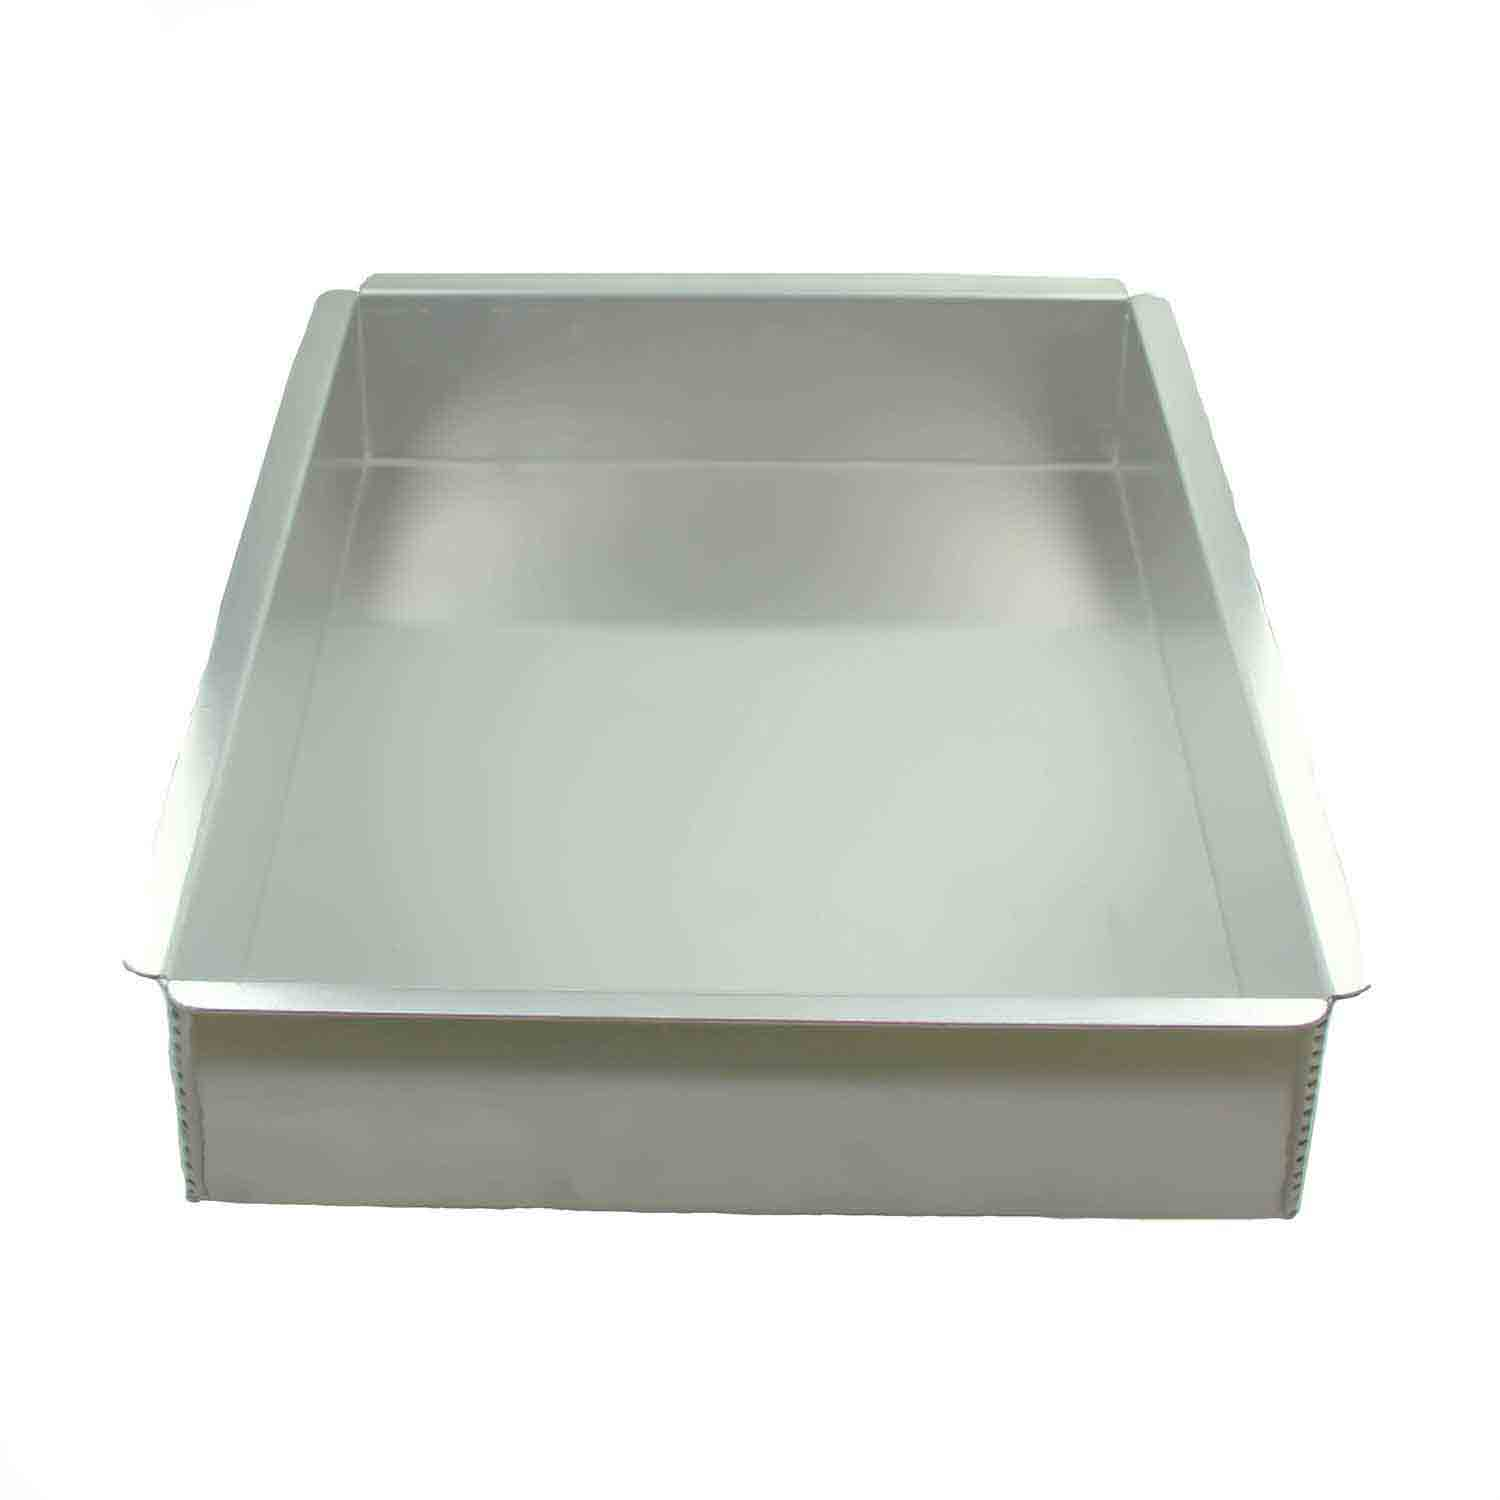 "12 x 18 x 3"" Magic Line Half Sheet Cake Pan"